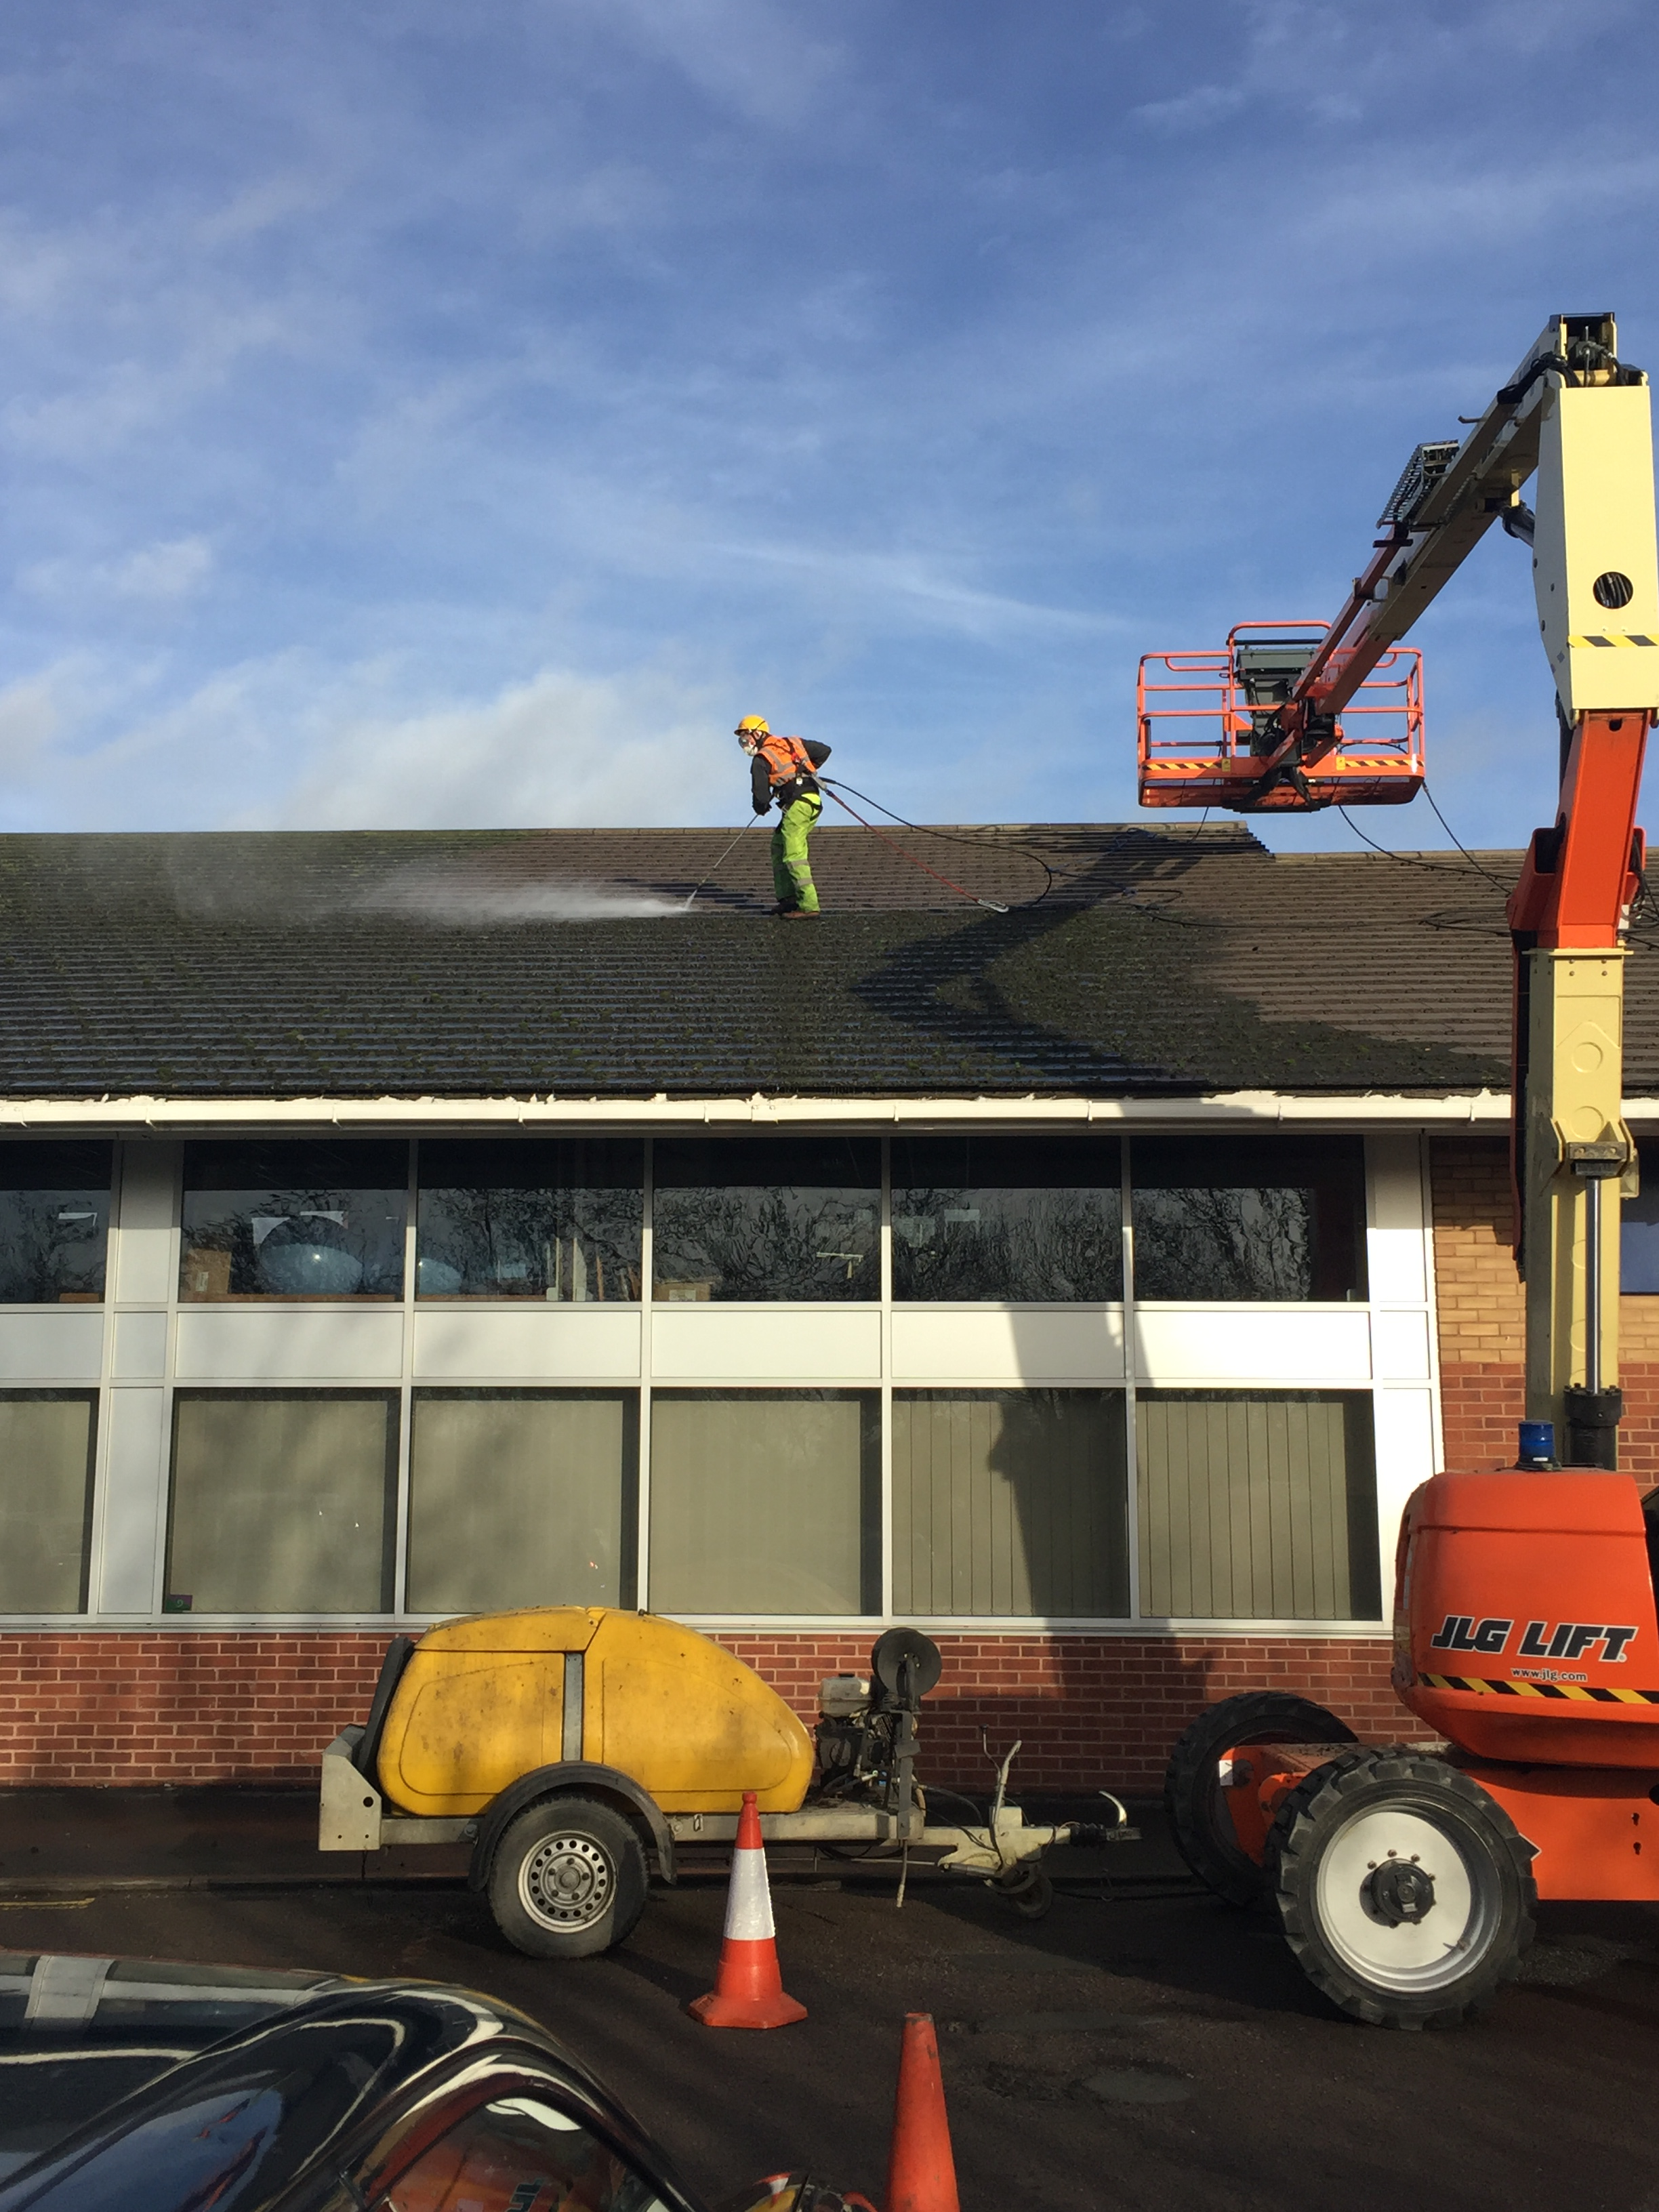 Mark's Cleaning specialises in gutter cleaning in the South West